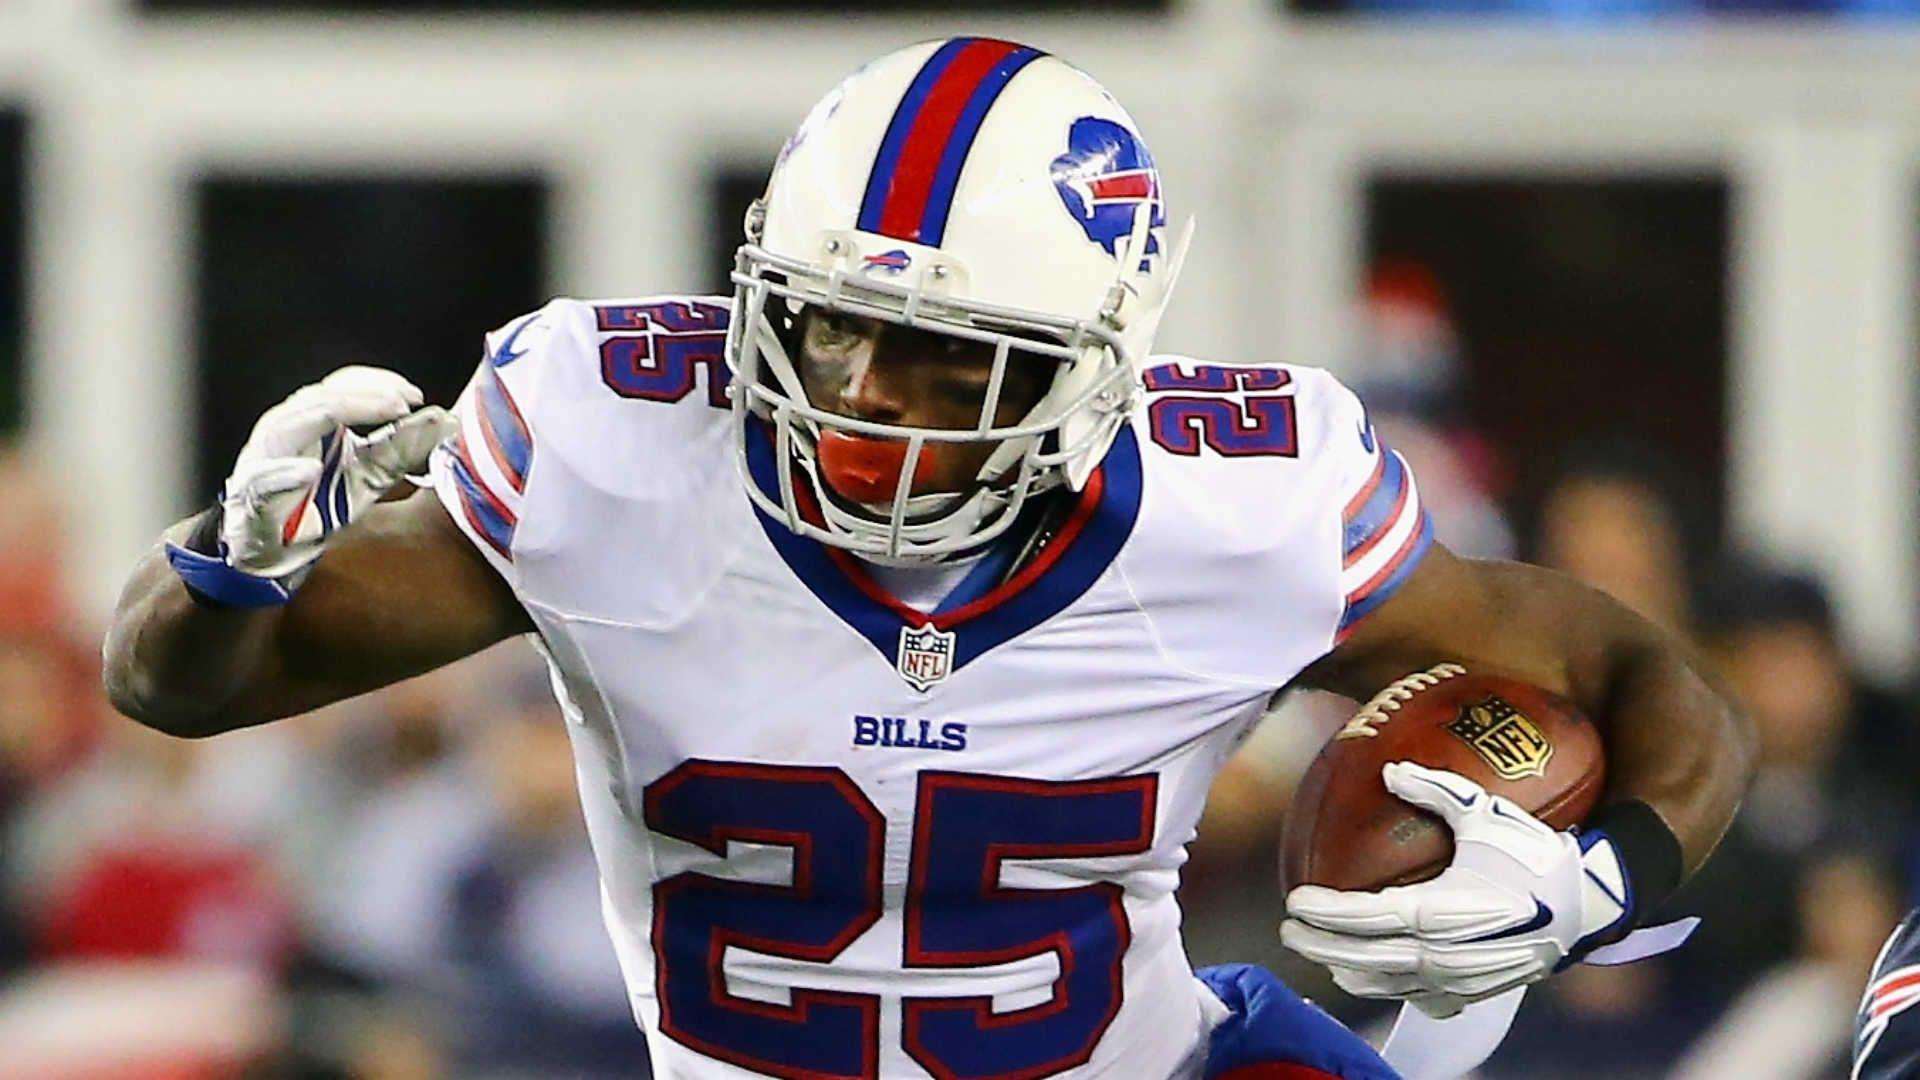 LeSean McCoy puts investigation behind him, defends his character